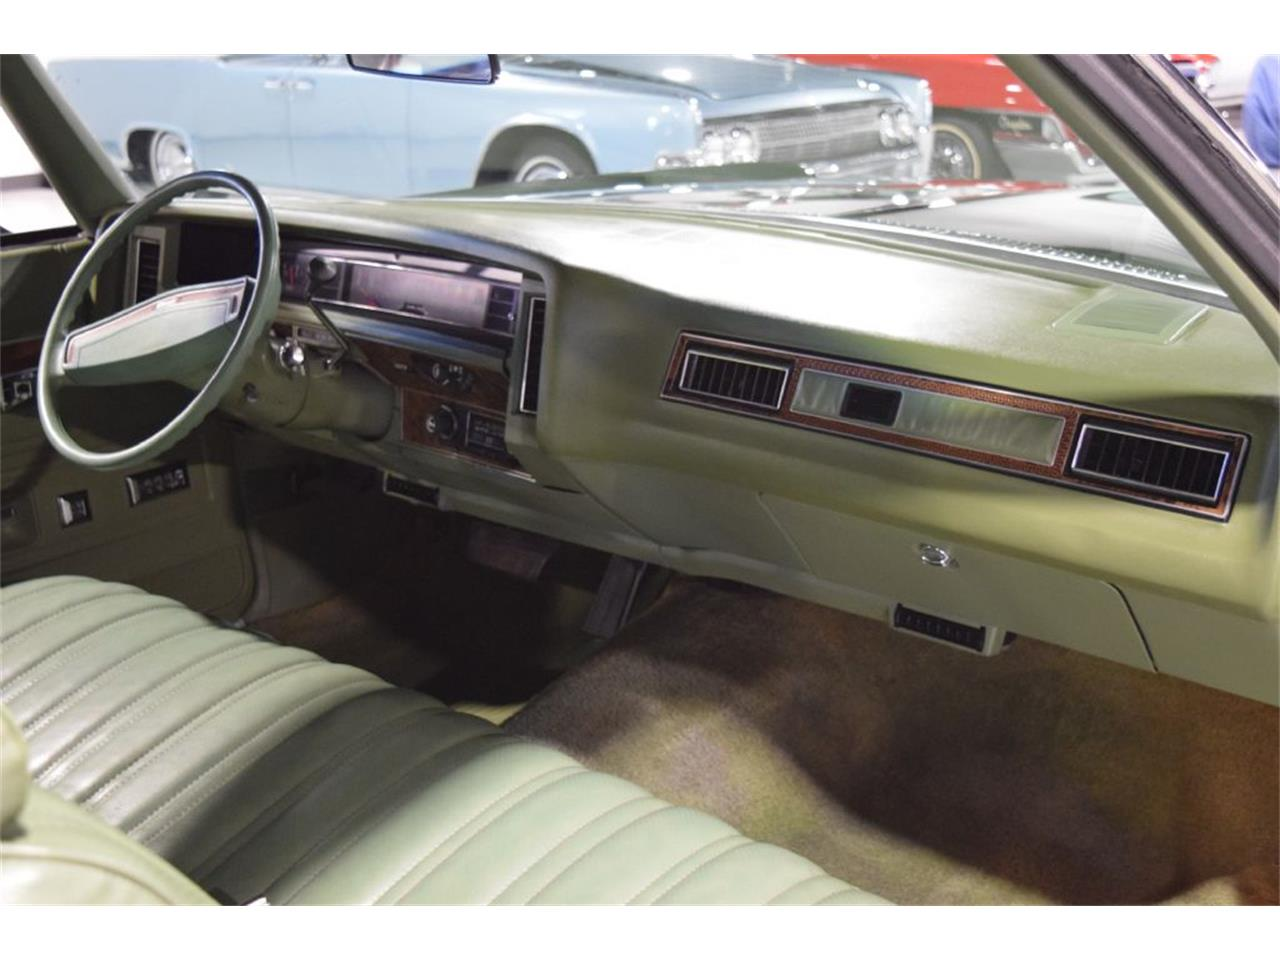 1974 Chevrolet Caprice for sale in Sioux City, IA – photo 24